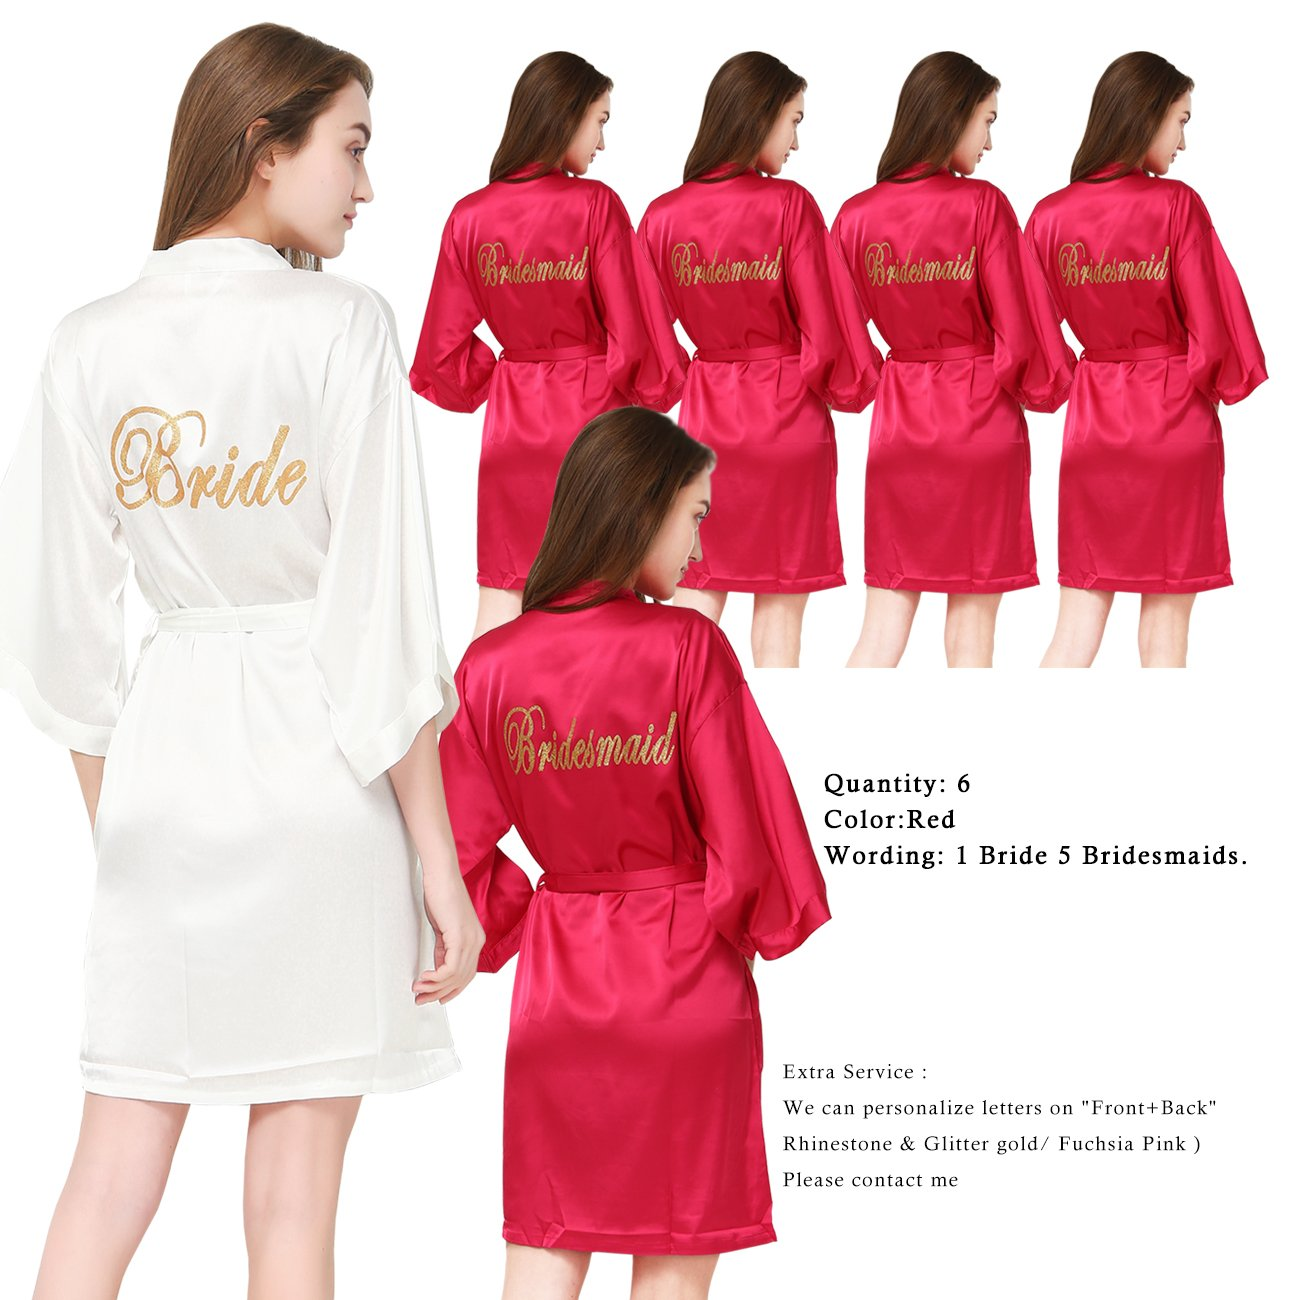 PROGULOVER Set Of 6 Women's Satin Kimono Robe For Bride Bridesmaid With Gold Glitter Wedding Party Maid Of Honor Robes